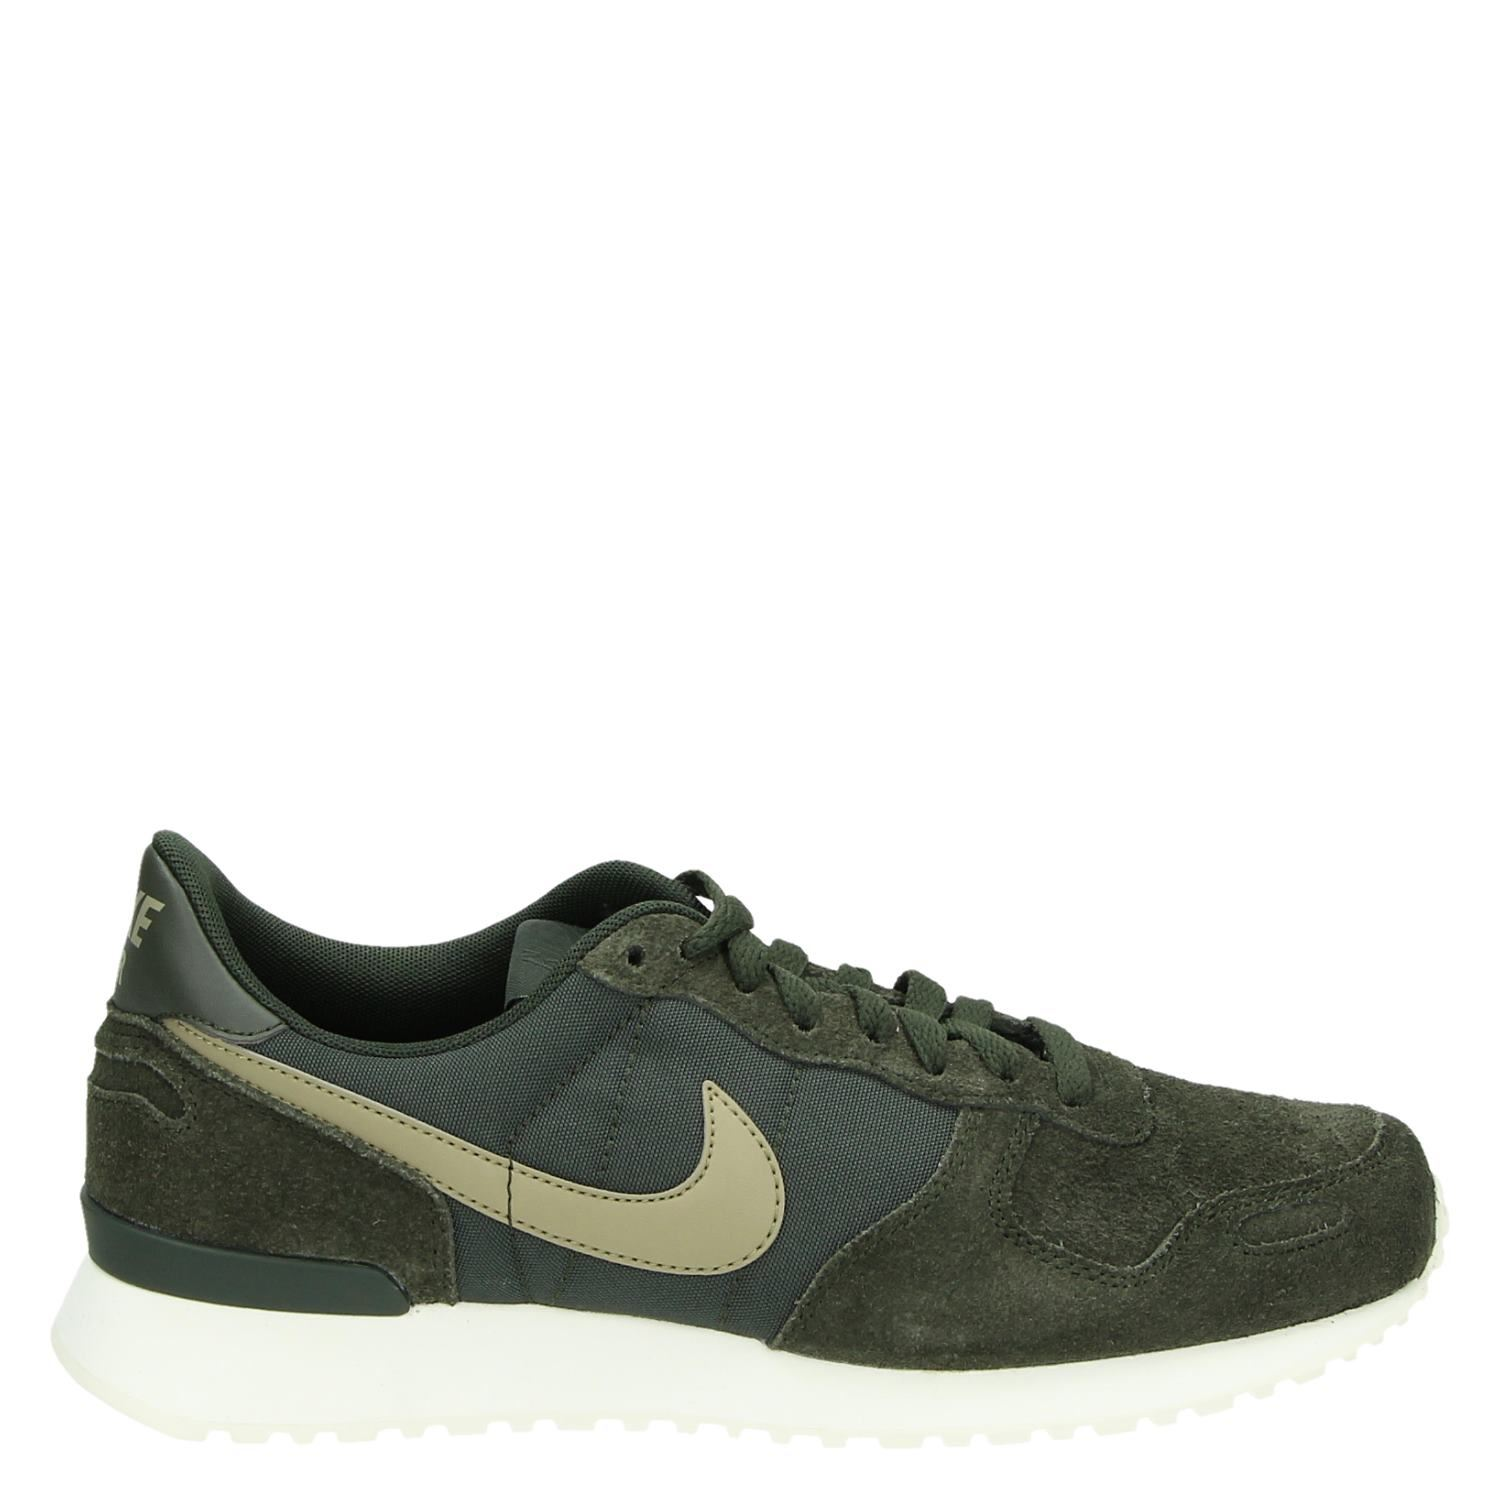 quality design eb8f6 13a0a Nike Air Vortex heren lage sneakers